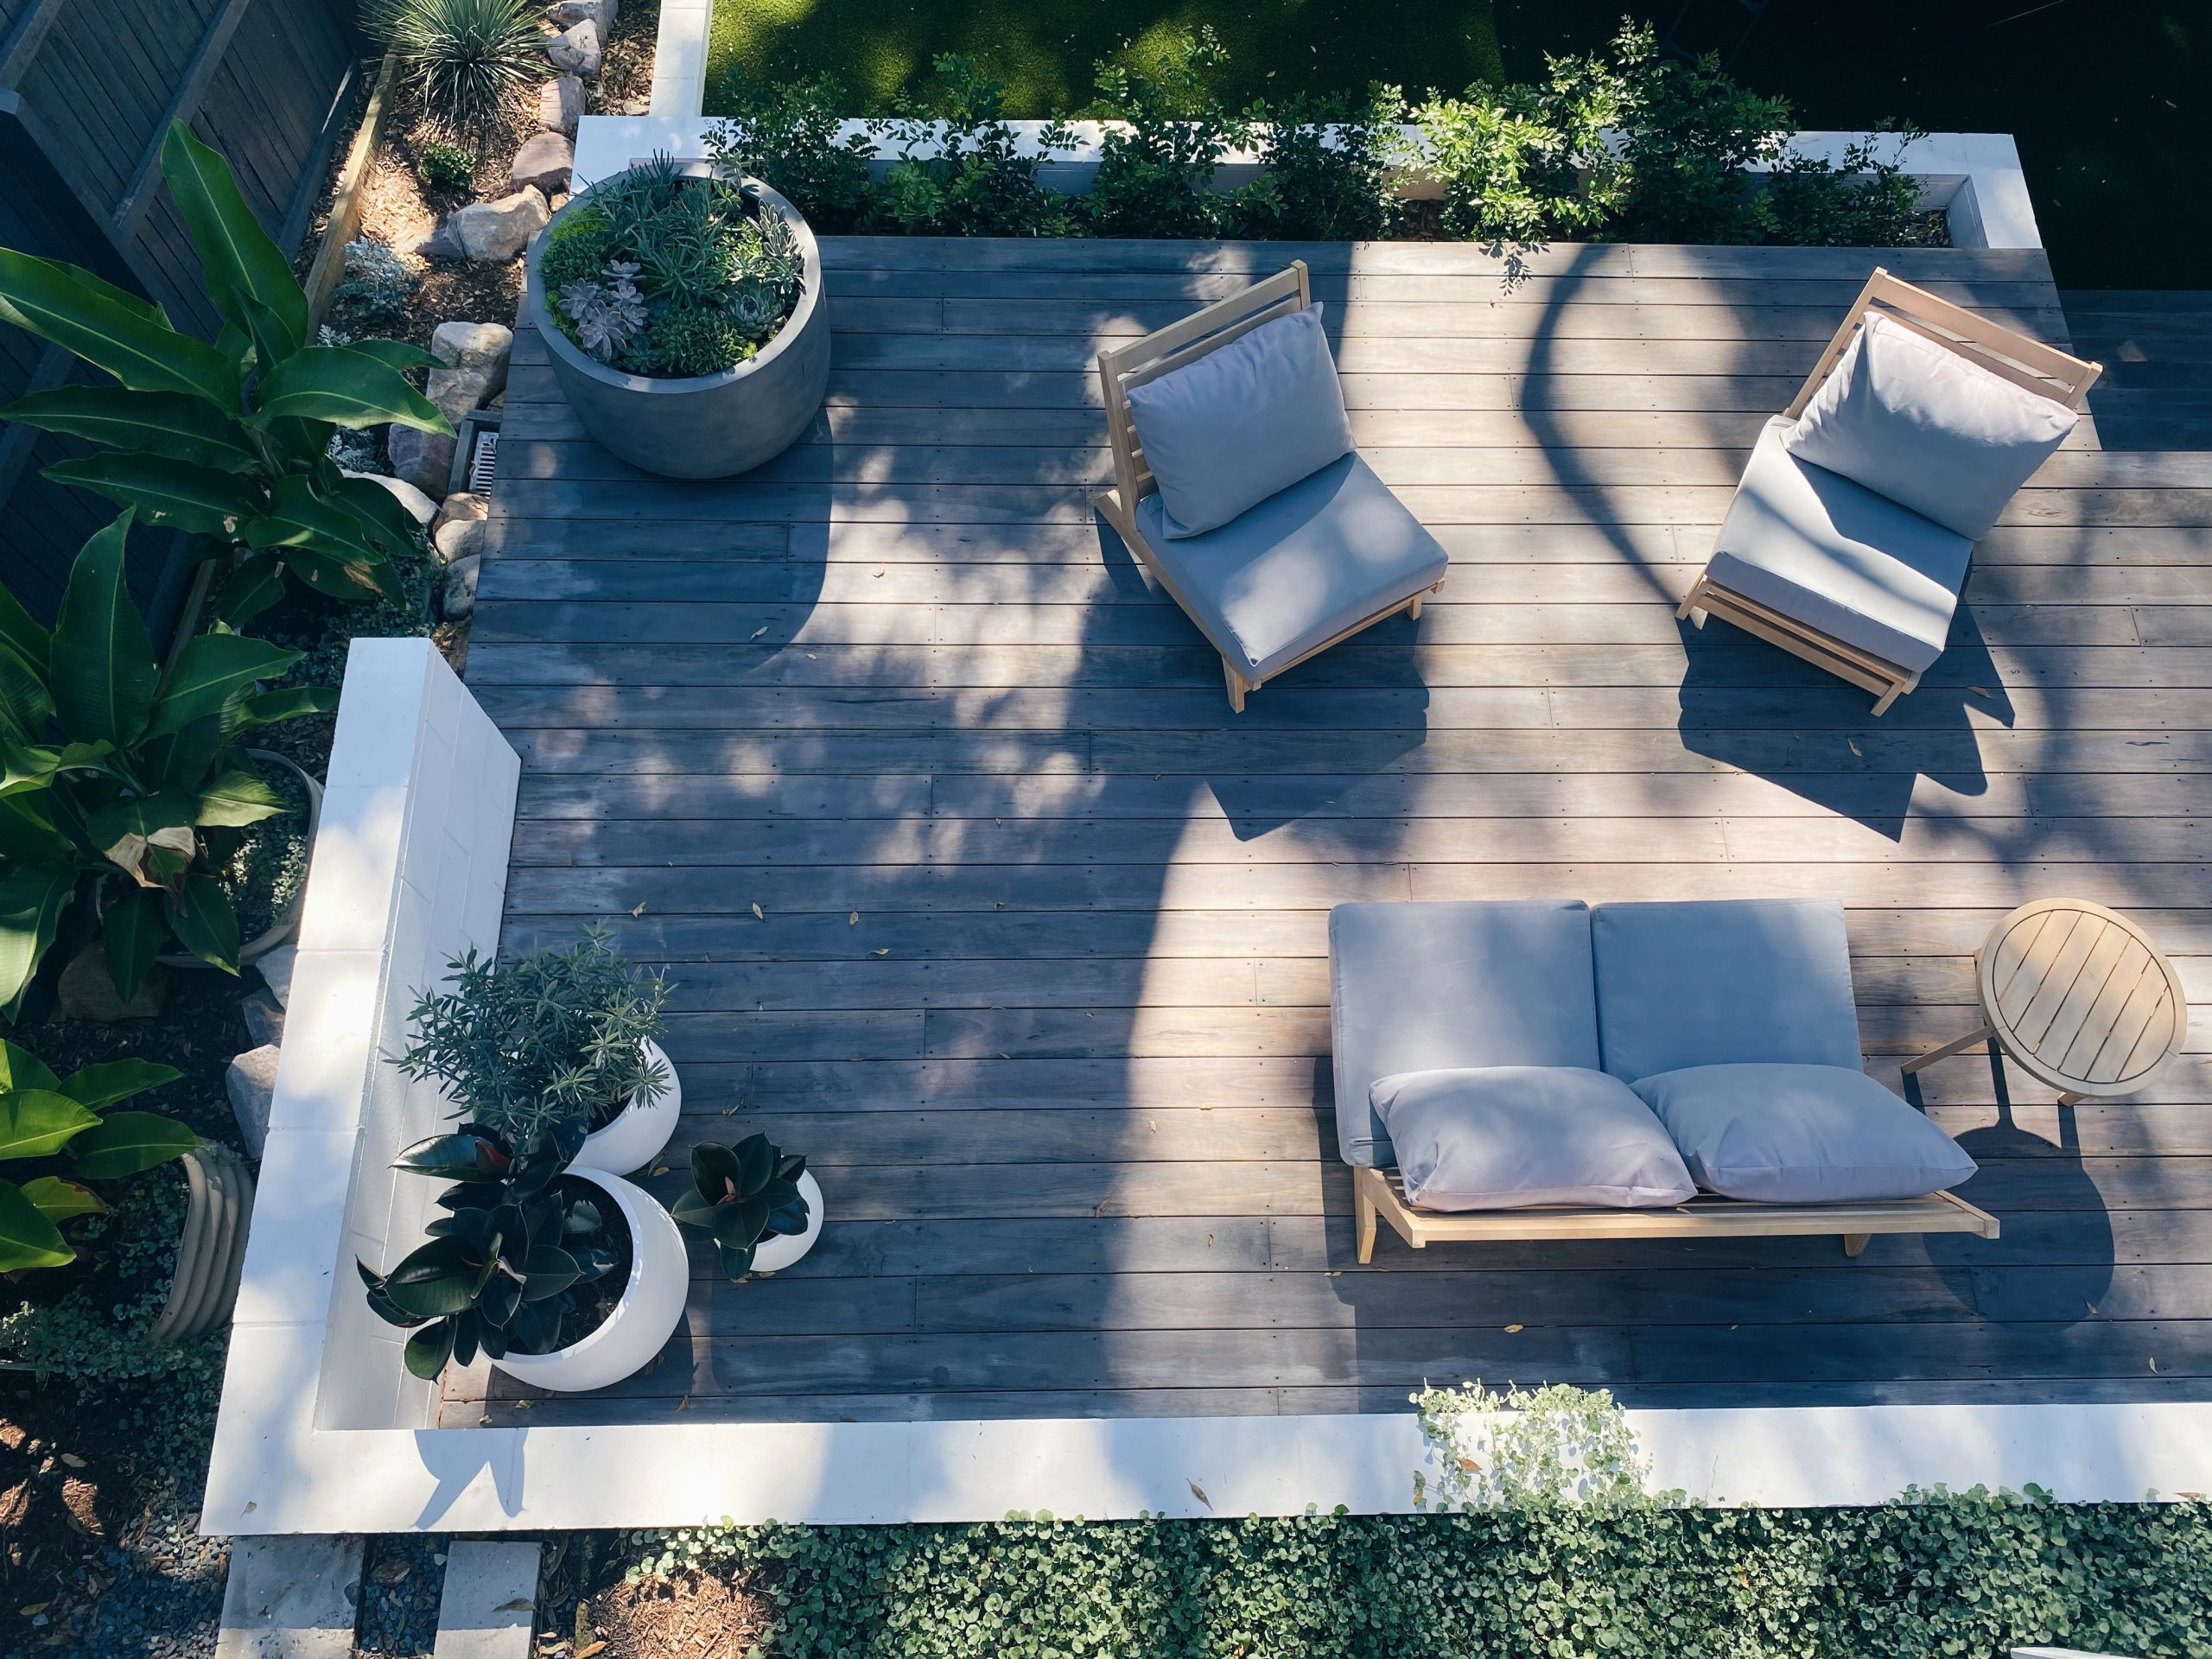 Curb Appeal: Home Exterior Renovations That Boost Value